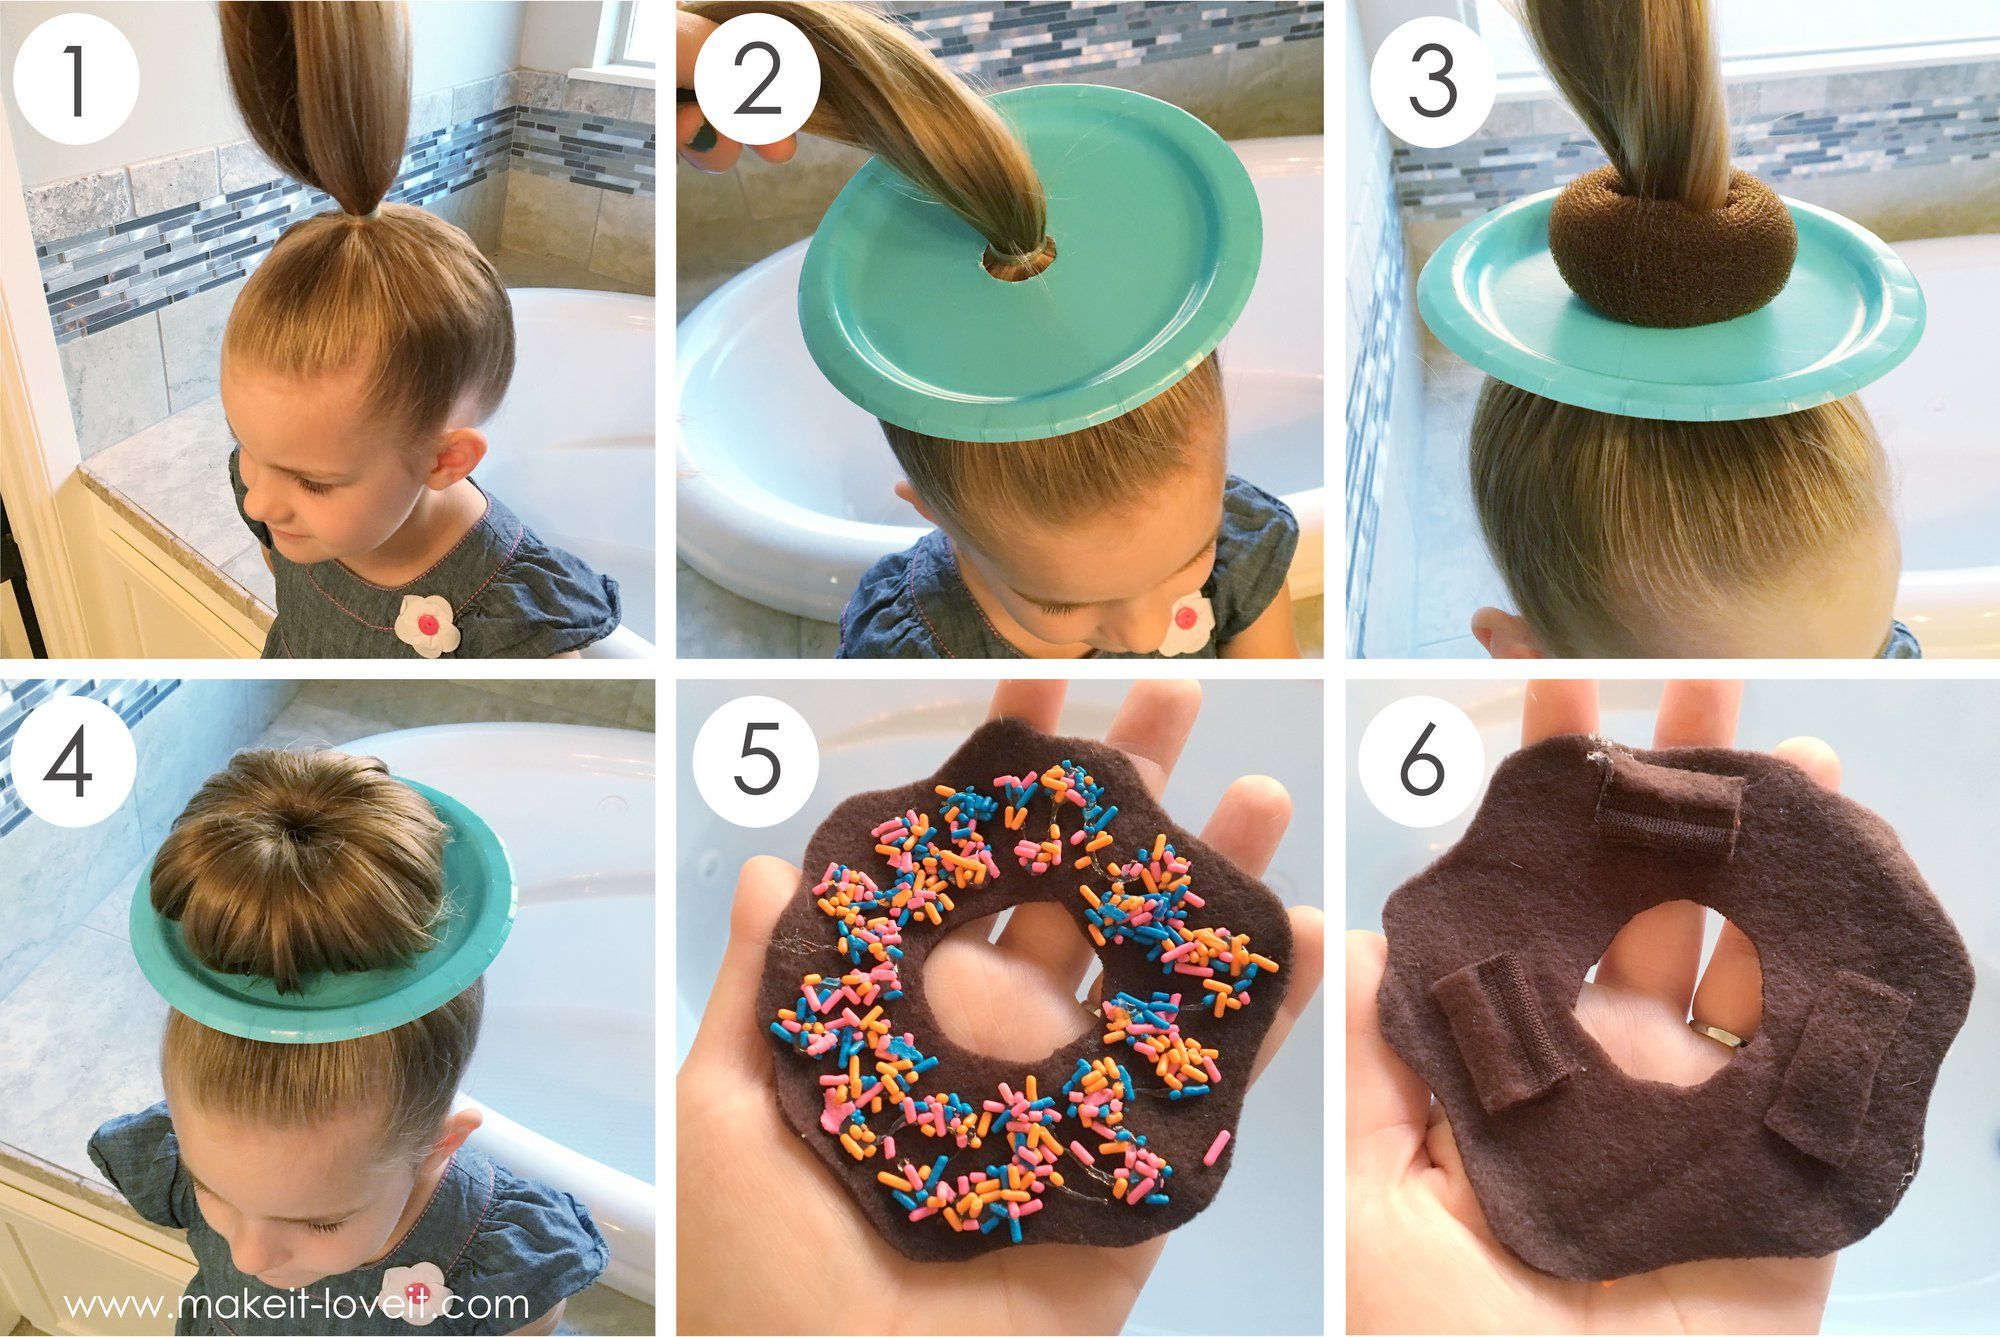 25 Clever Ideas For Wacky Hair Day At School Including Chloe S Wacky Hair Wacky Hair Days Crazy Hair For Kids Wacky Hair